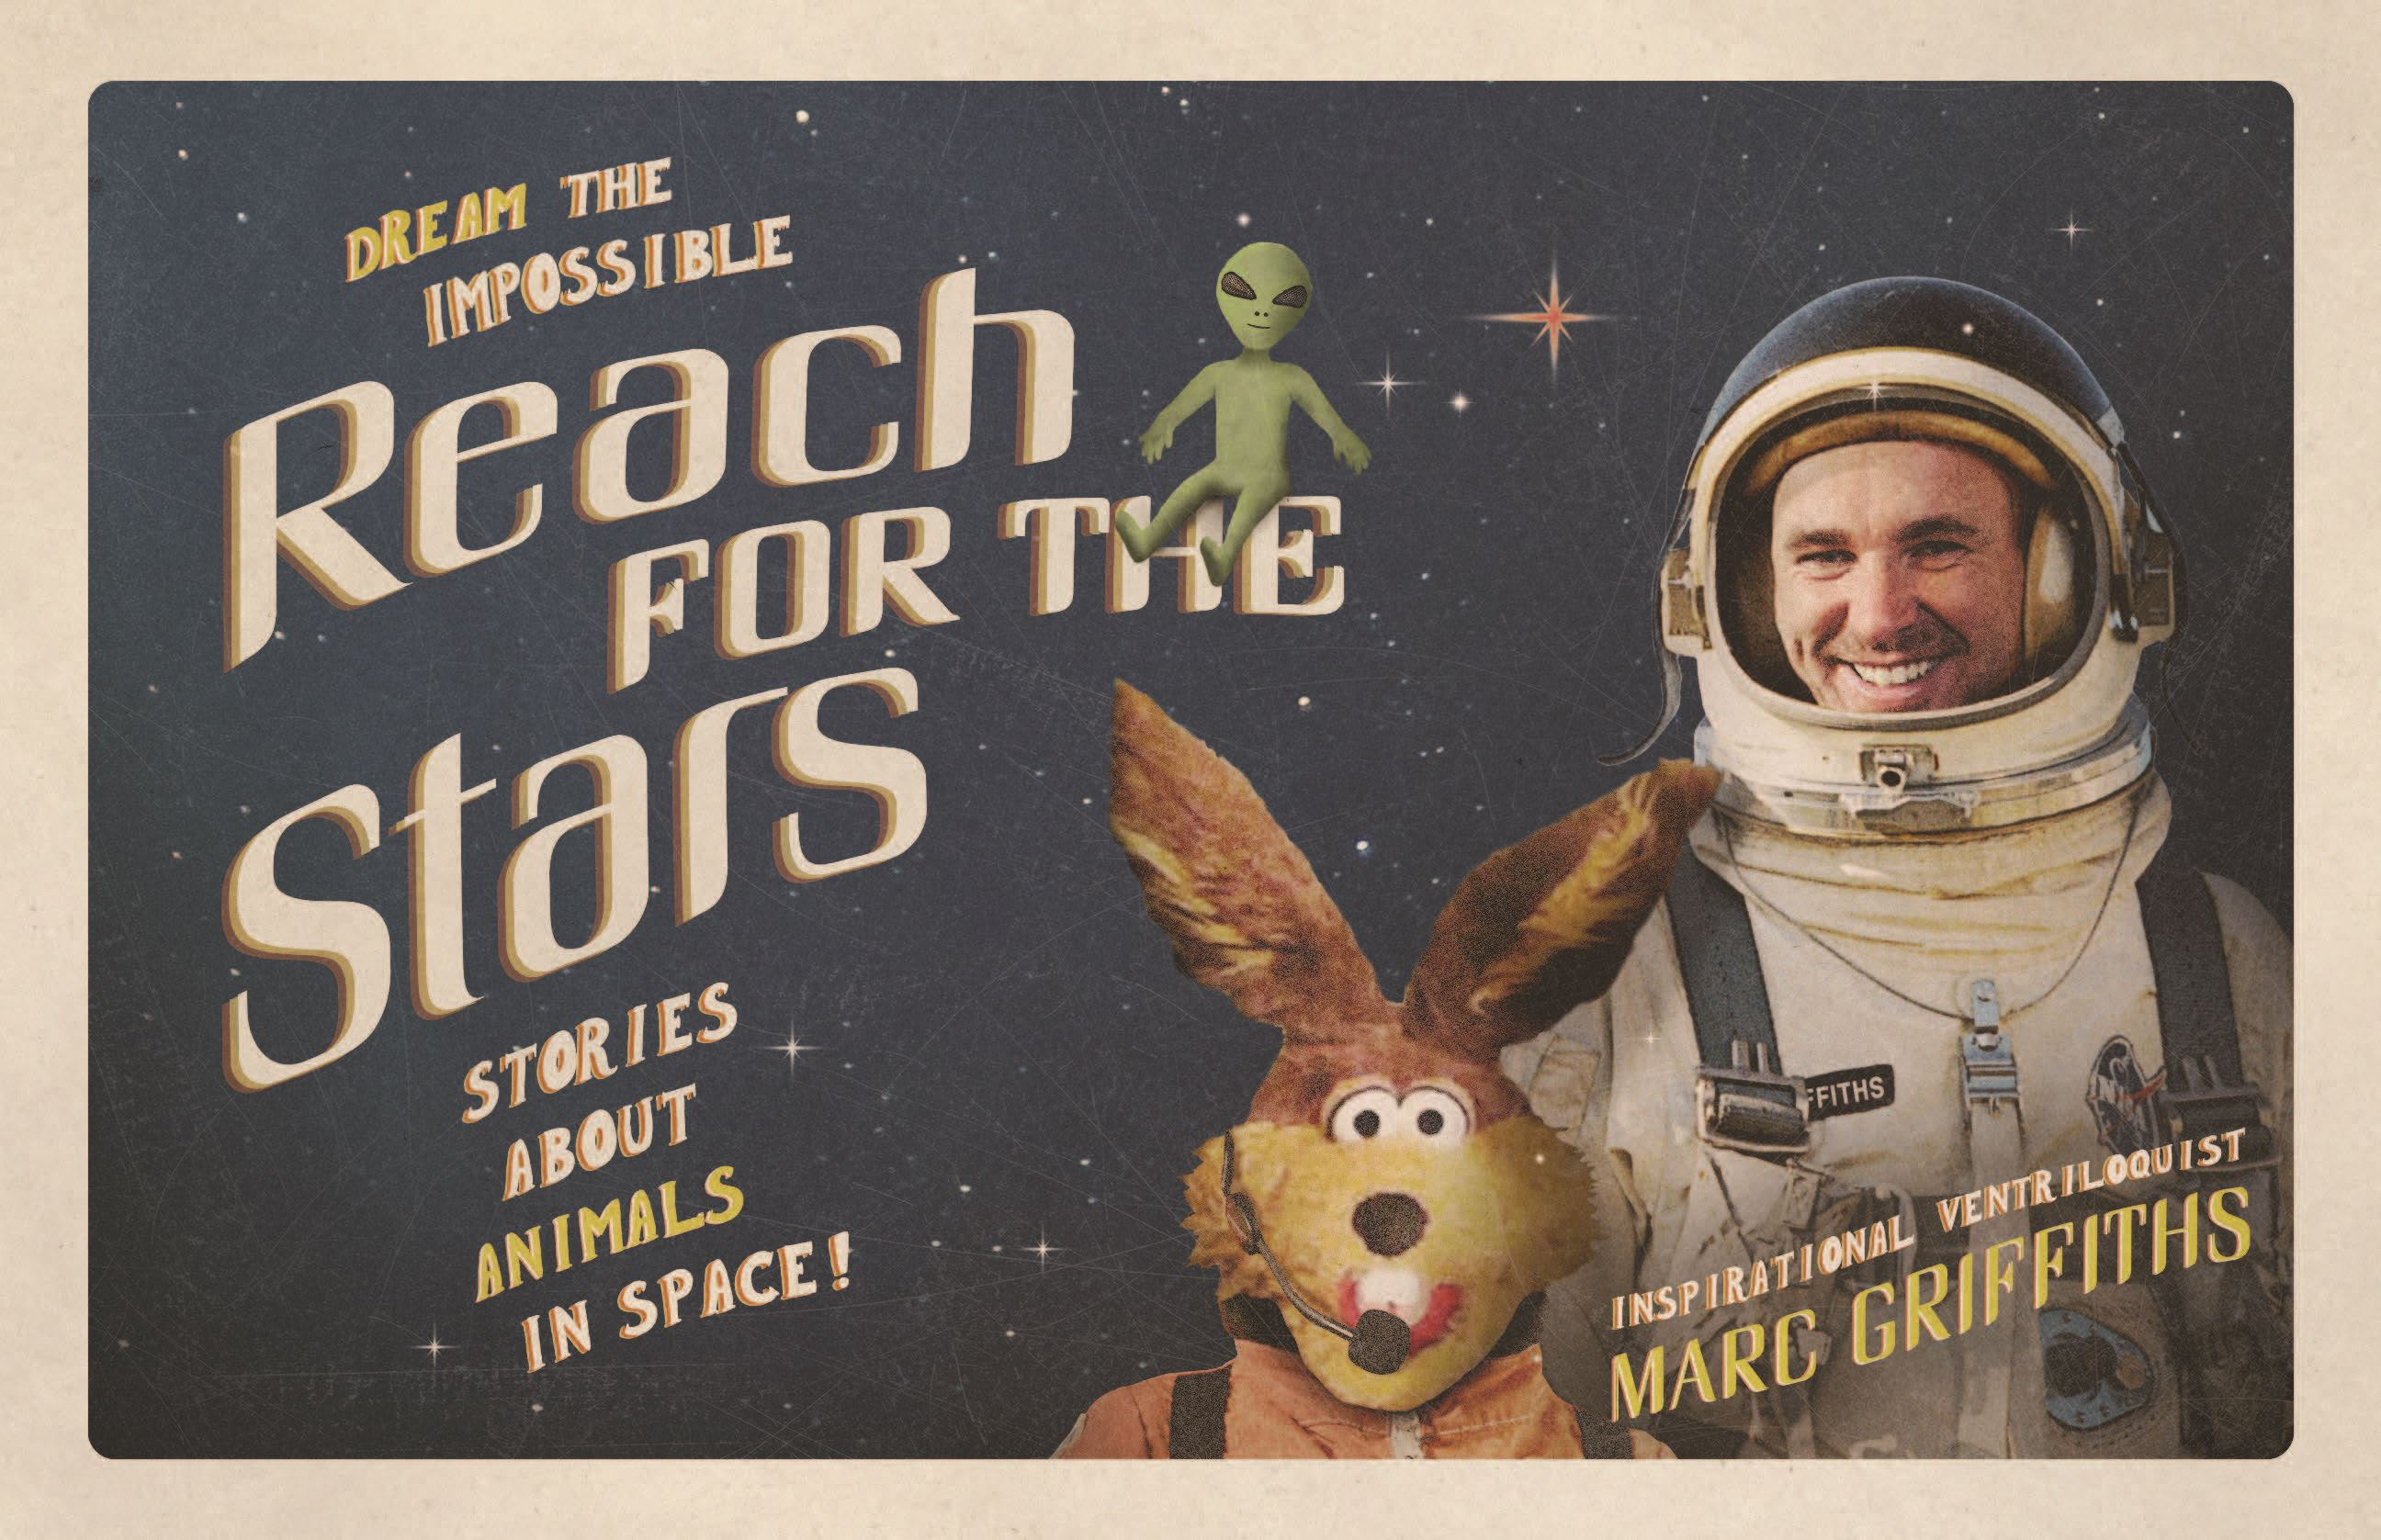 Marc Griffiths Reach for the Stars flyer